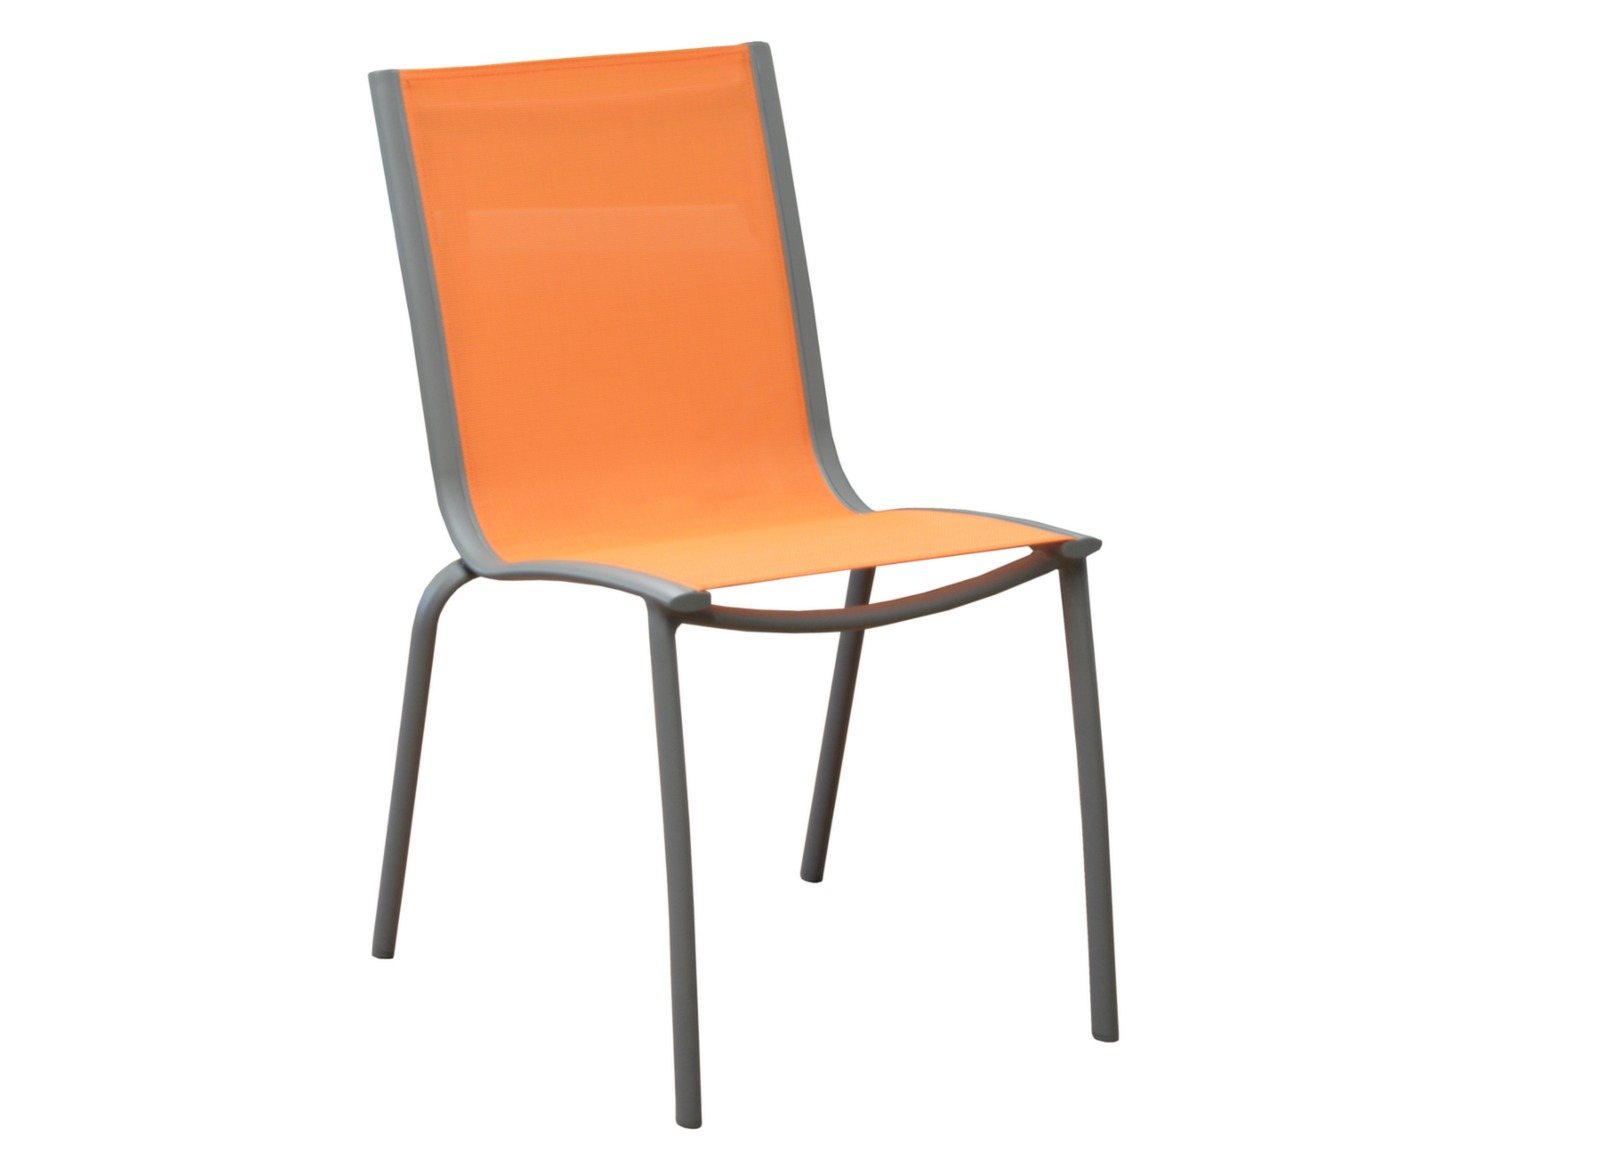 Salon De Jardin Orange Chaise De Jardin En Aluminium Linéa Empilable Proloisirs